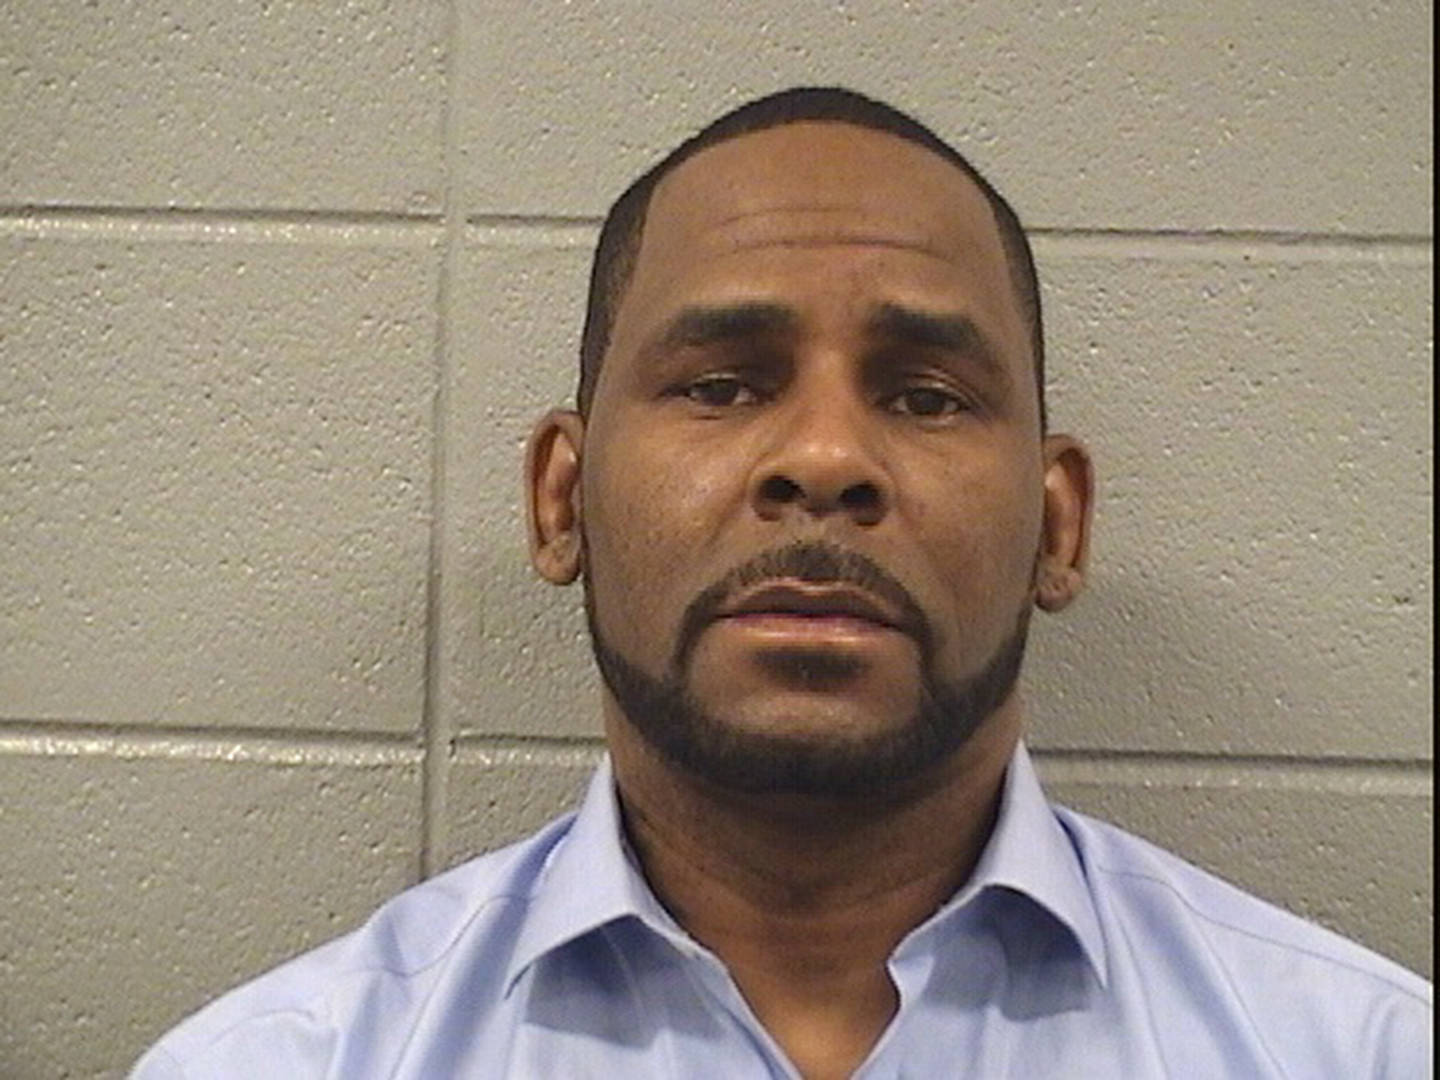 R. Kelly Pleads Not Guilty to 11 New Sex Crime-Related Charges